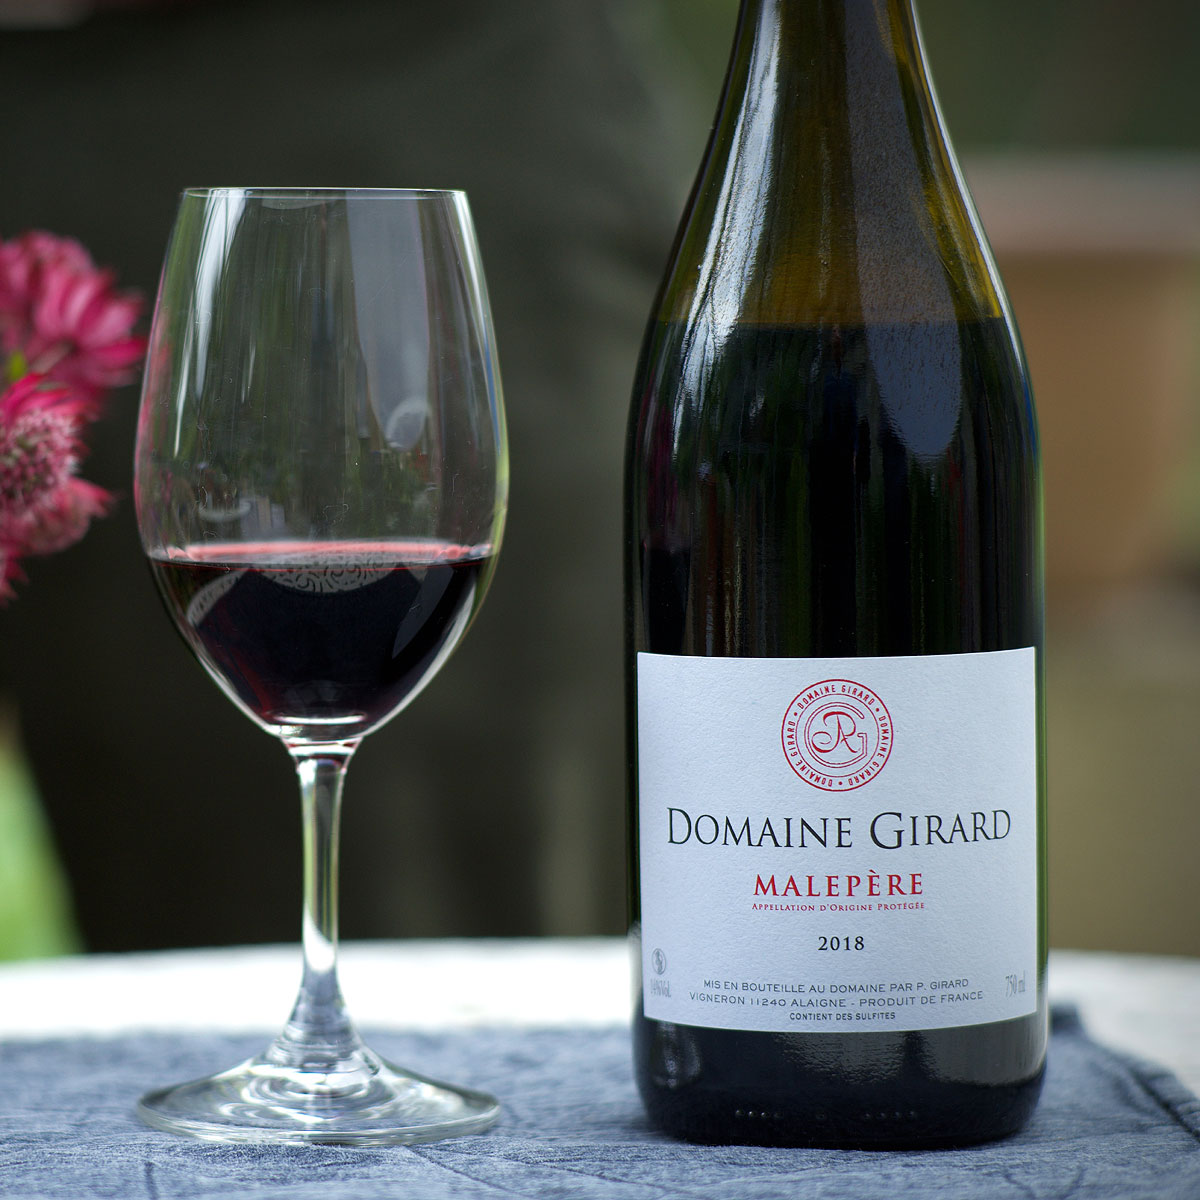 Malepère: Domaine Girard 'Cuvée Tradition' 2018 - Lifestyle